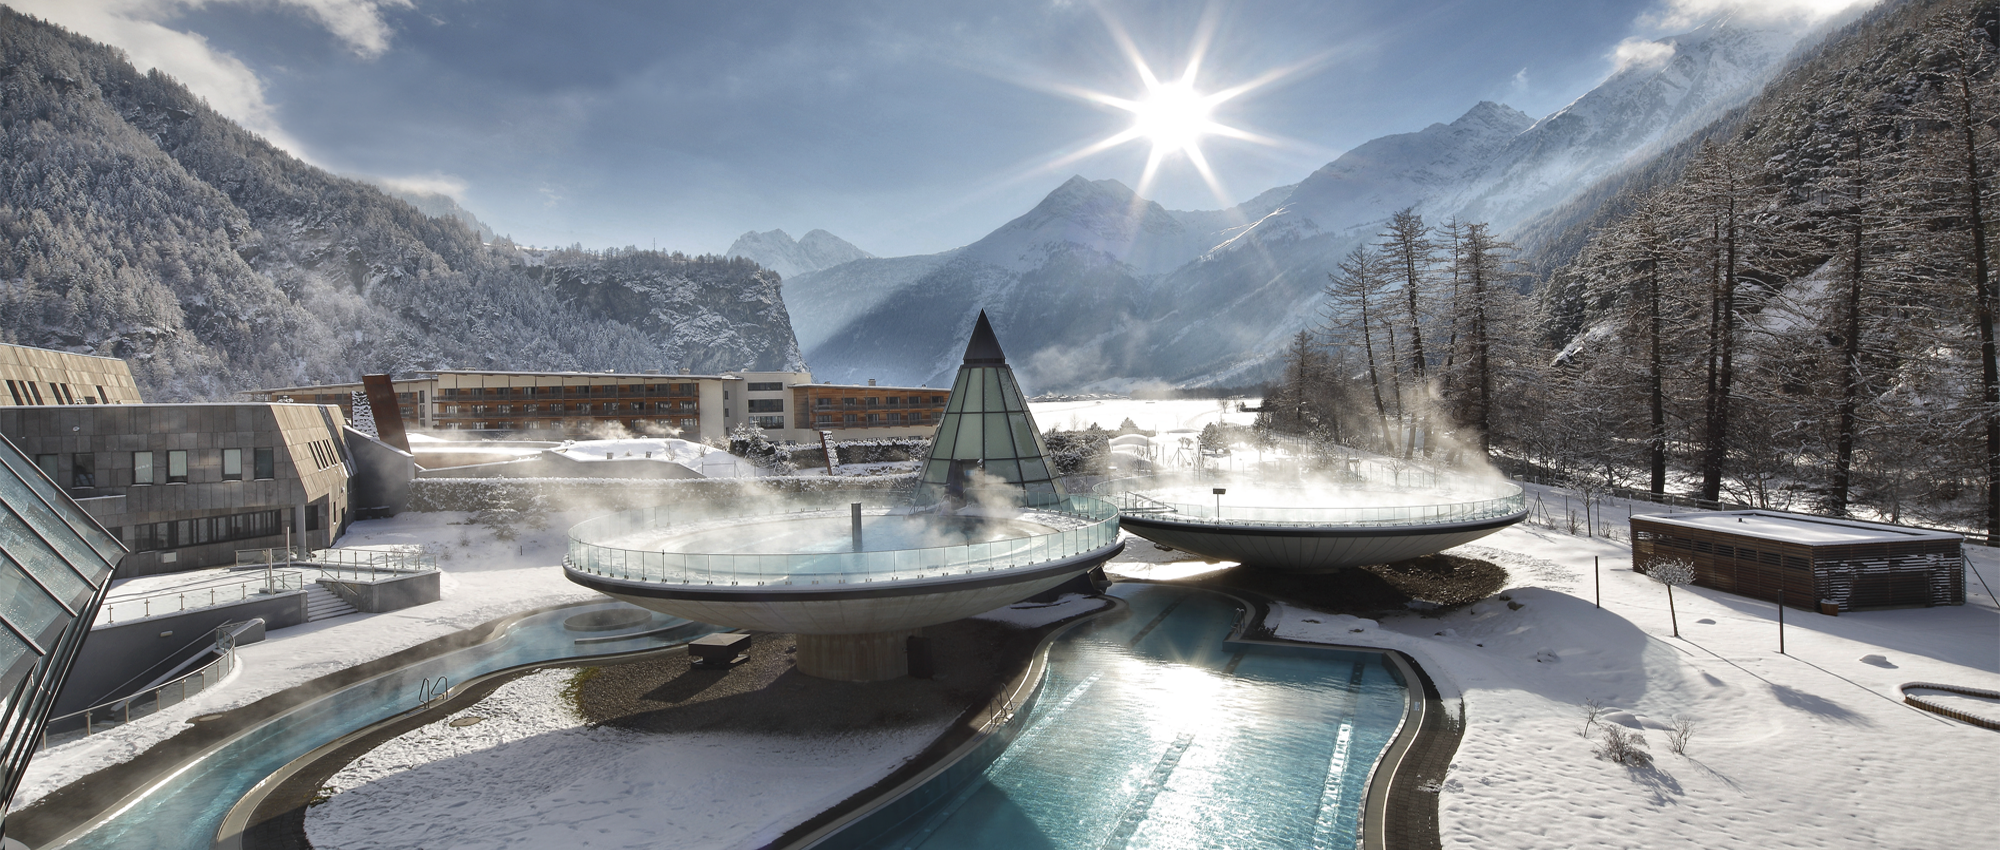 Enjoy the worlds most amazing thermal spa at Aqua Dome in Solden Austria Old World Charm: 20 Austrian Hotels and Spas to Swoon Over